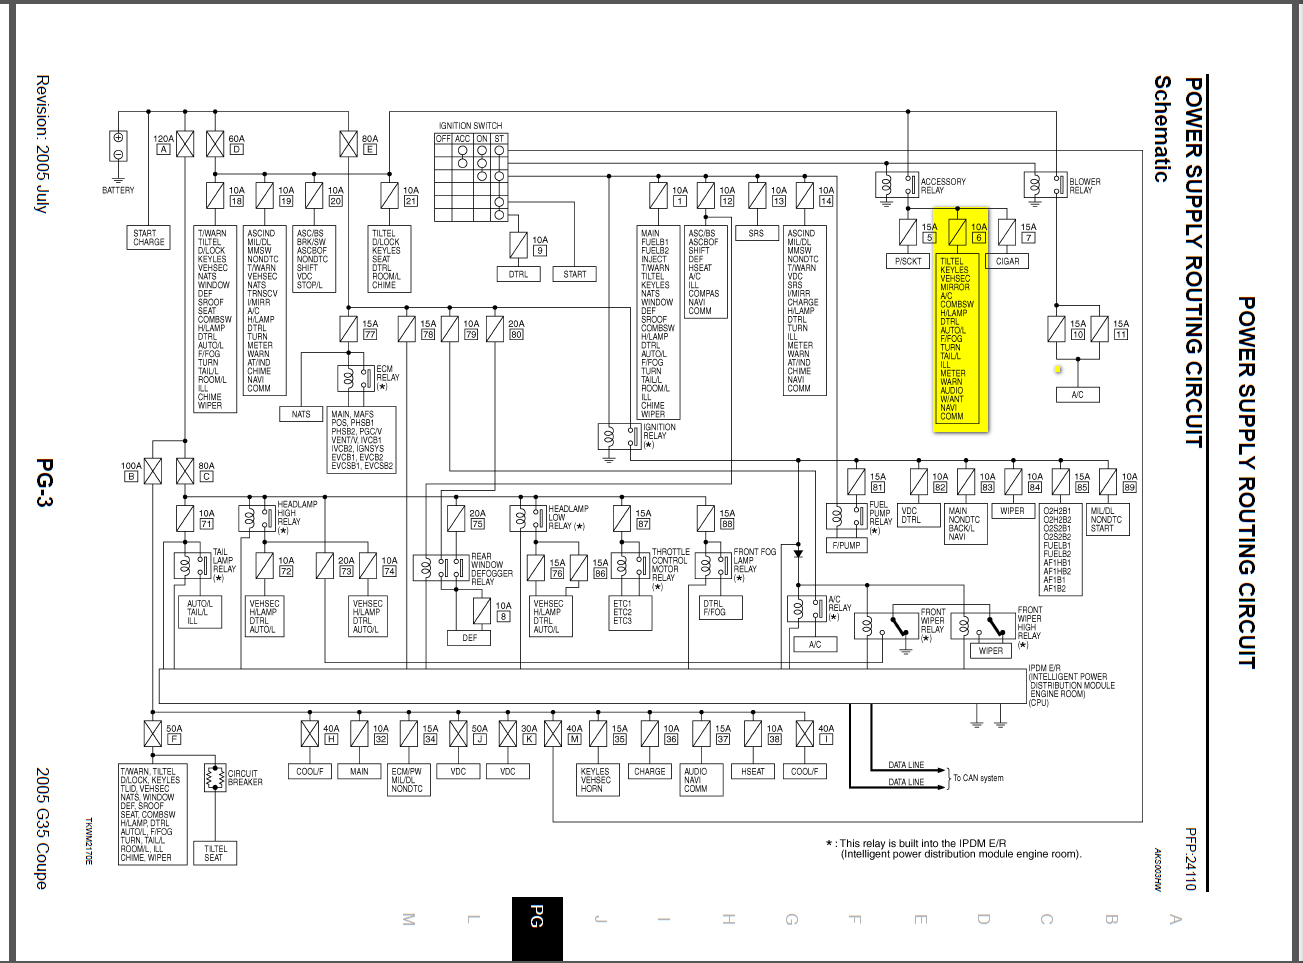 2008 G35 Fuse Box List Wiring Diagram Schematics Mini Cooper 2005 Infiniti Detailed Diagrams Durango